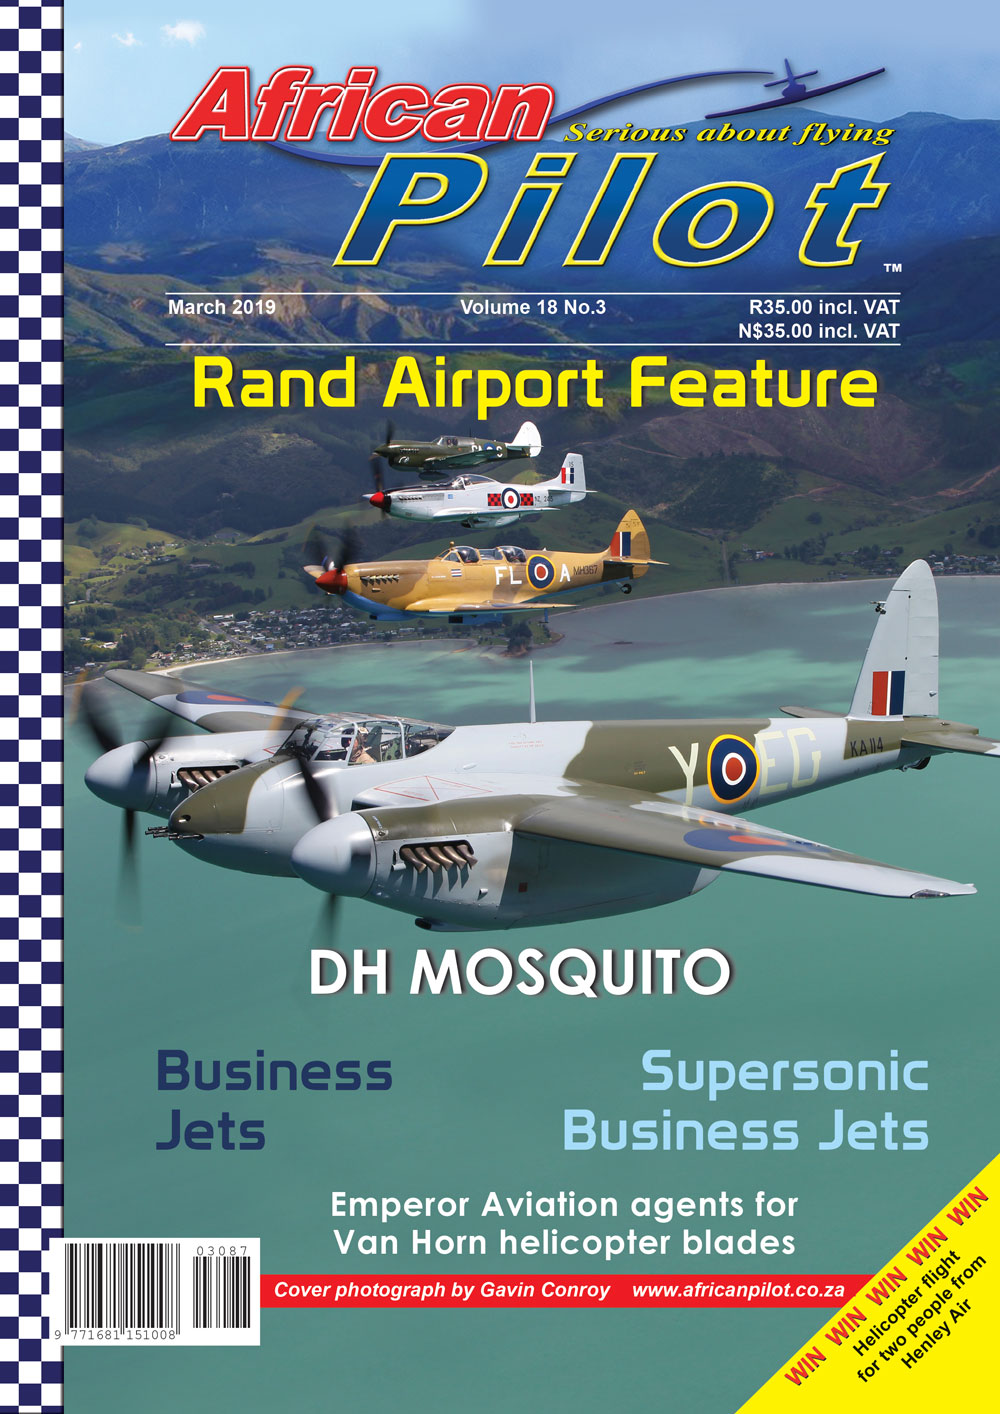 African Pilot - March 2019 edition